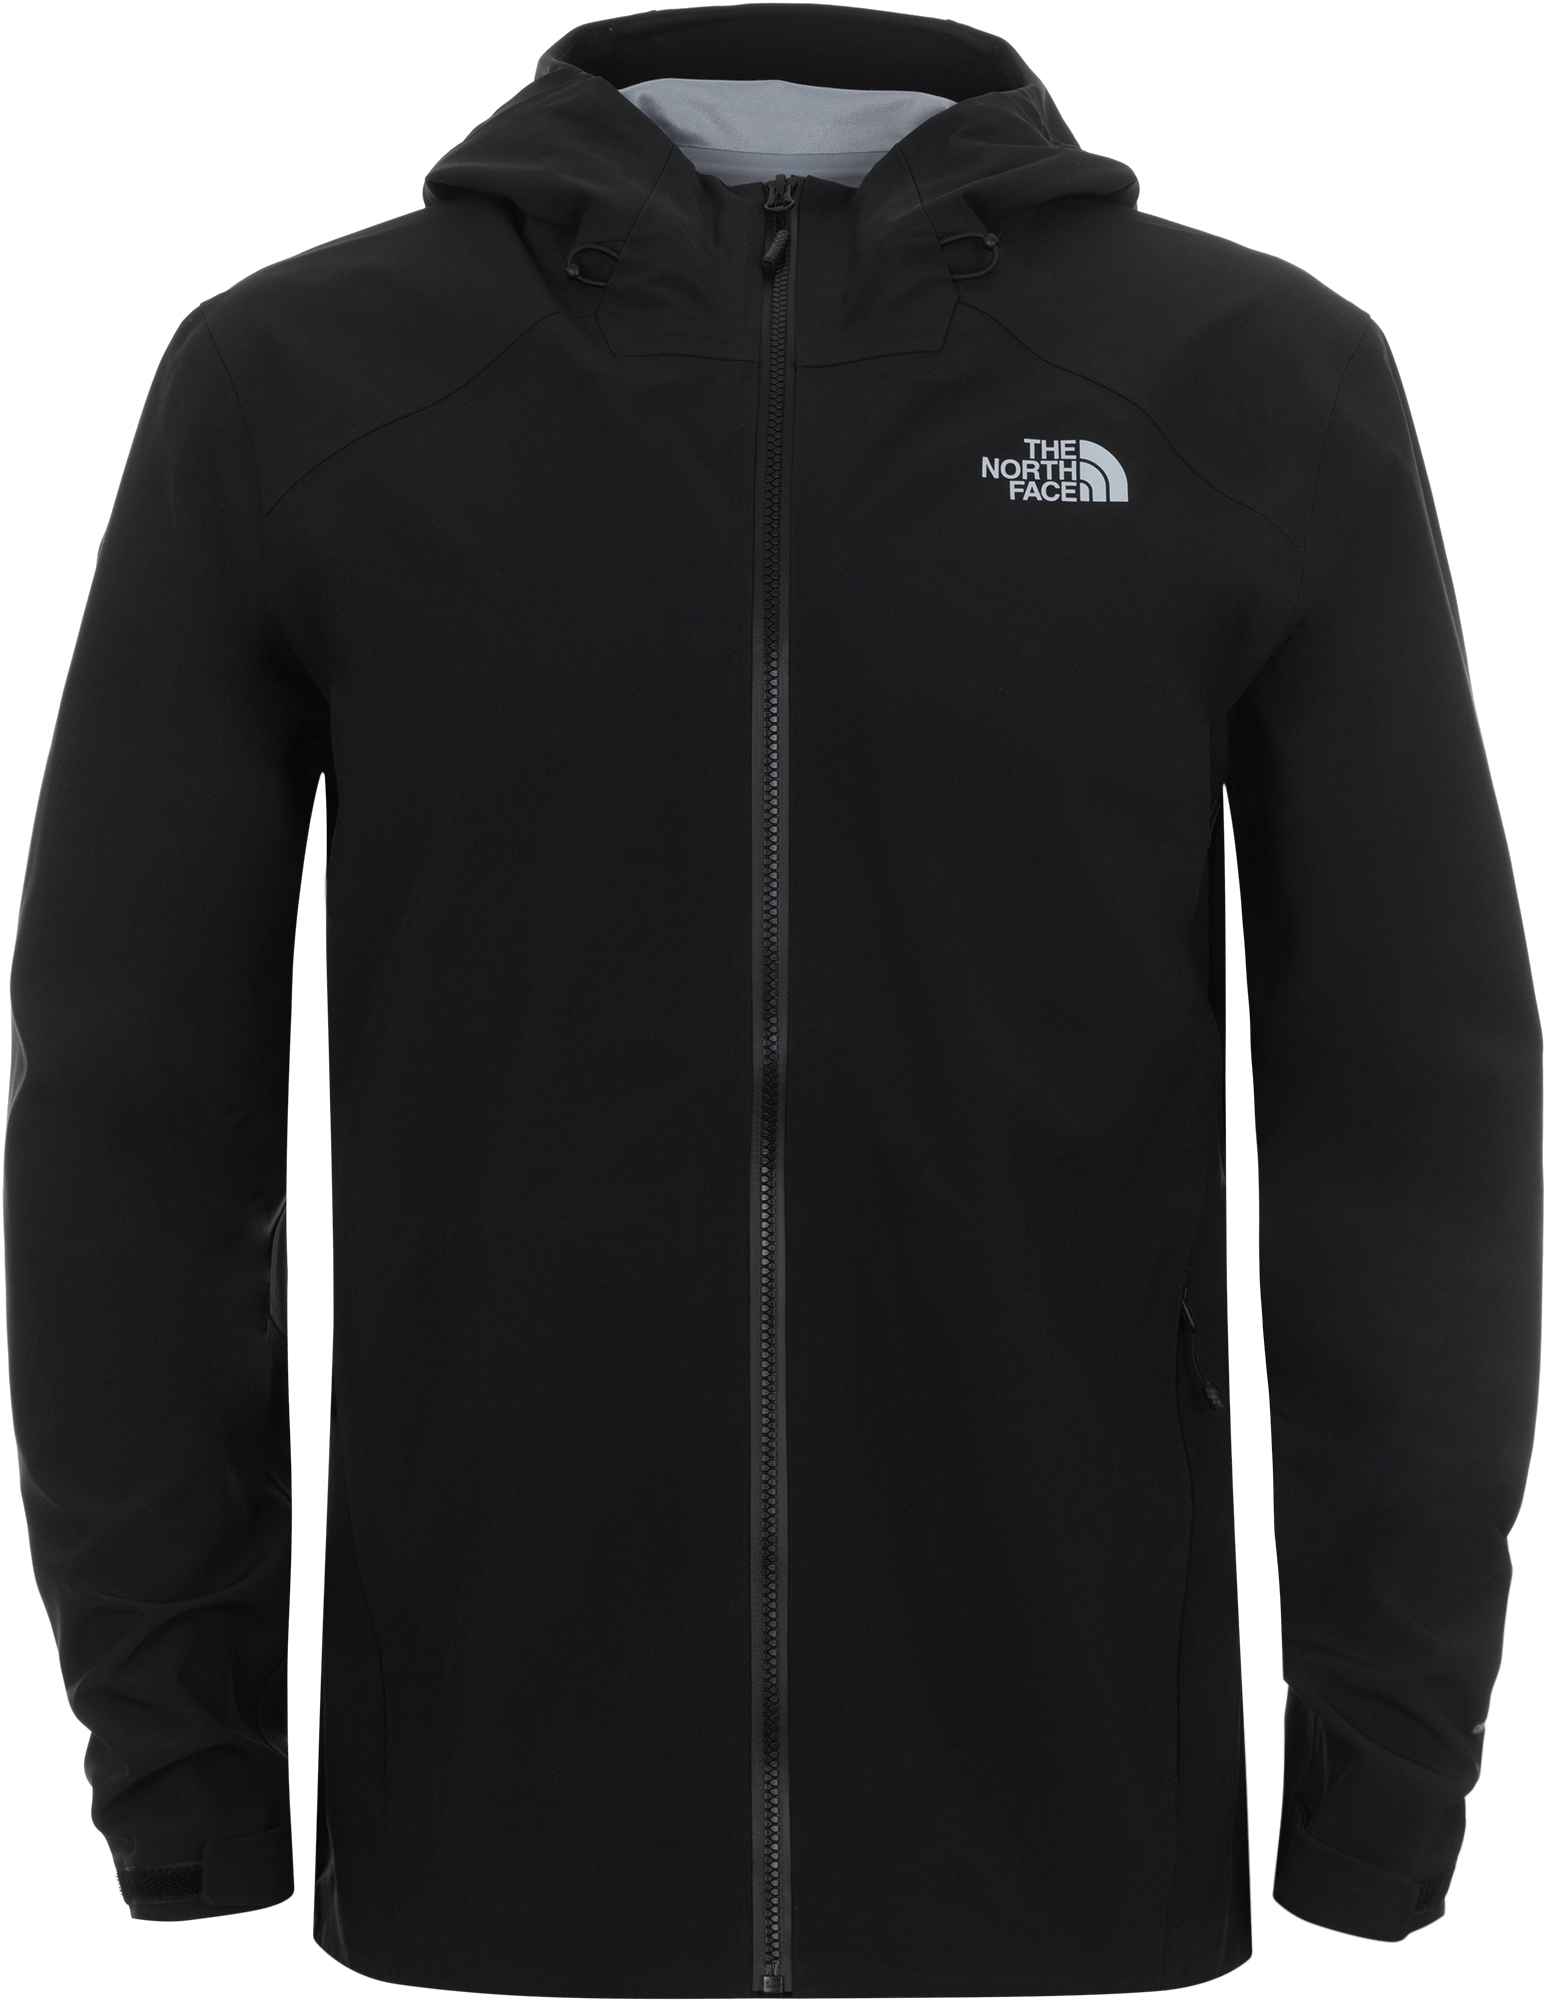 цена на The North Face Ветровка мужская The North Face Apex Flex DryVent, размер 50